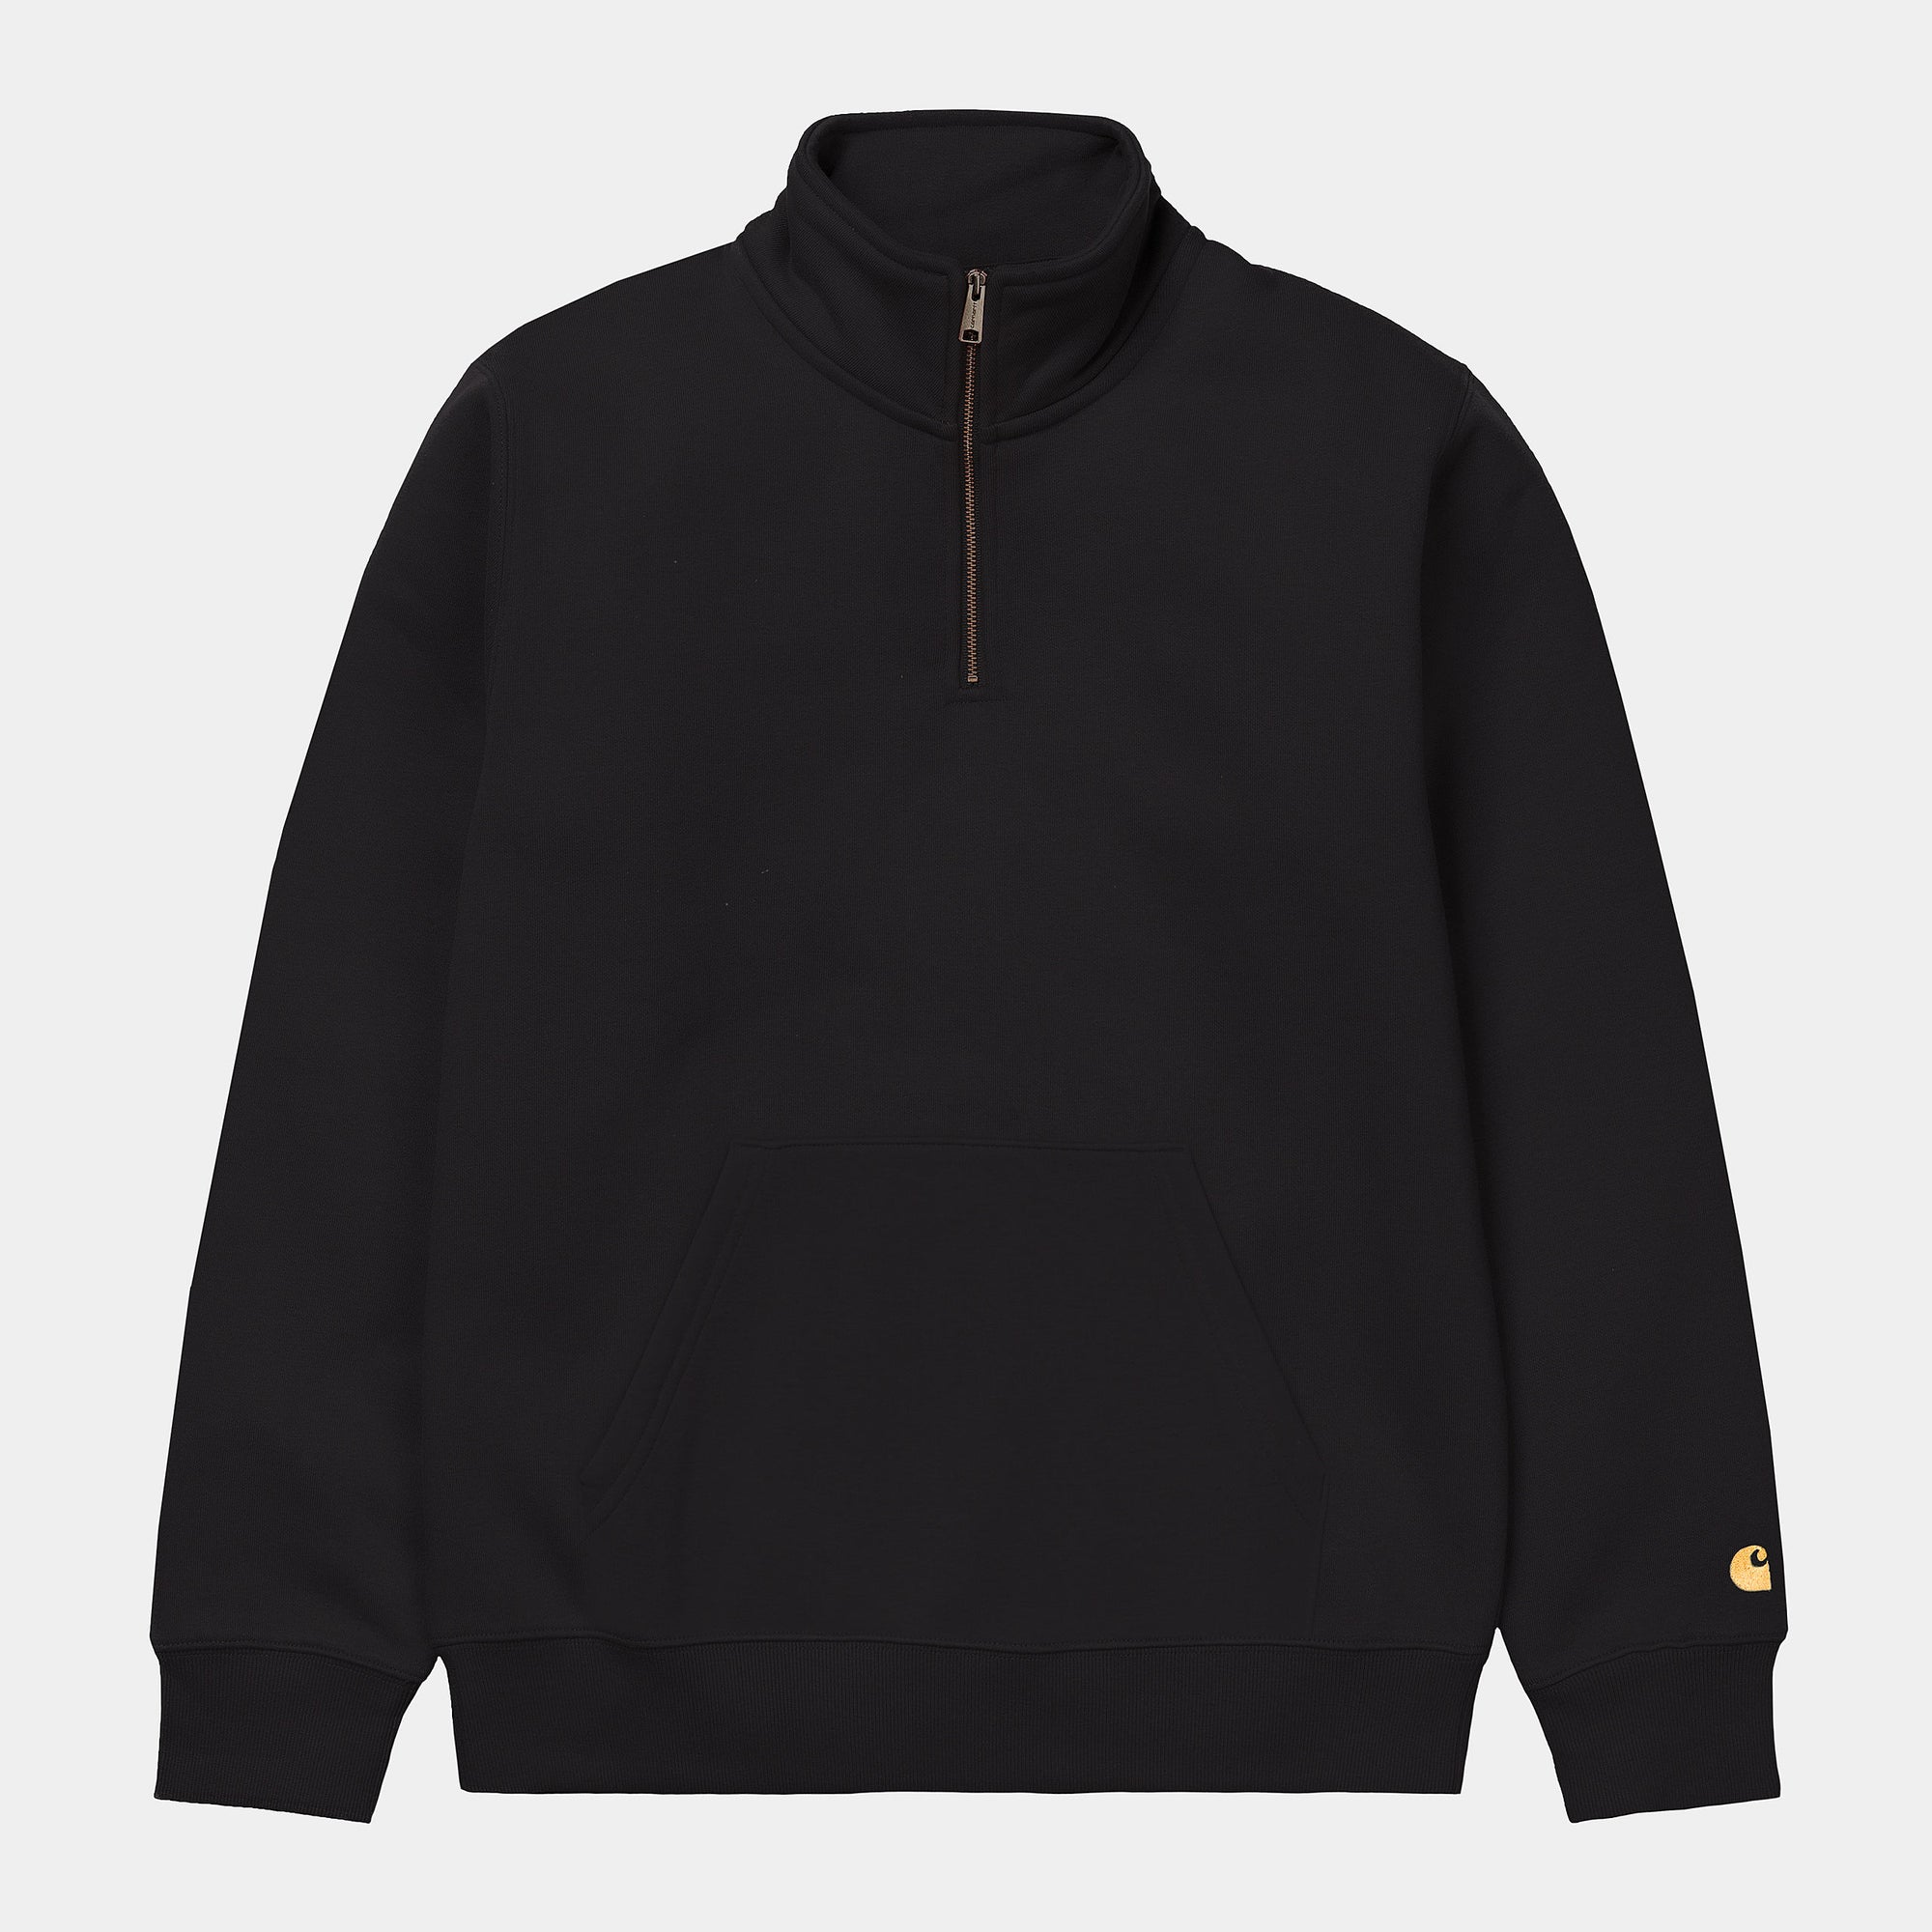 Carhartt Wip Chase Zip Neck Sweat Black / Gold